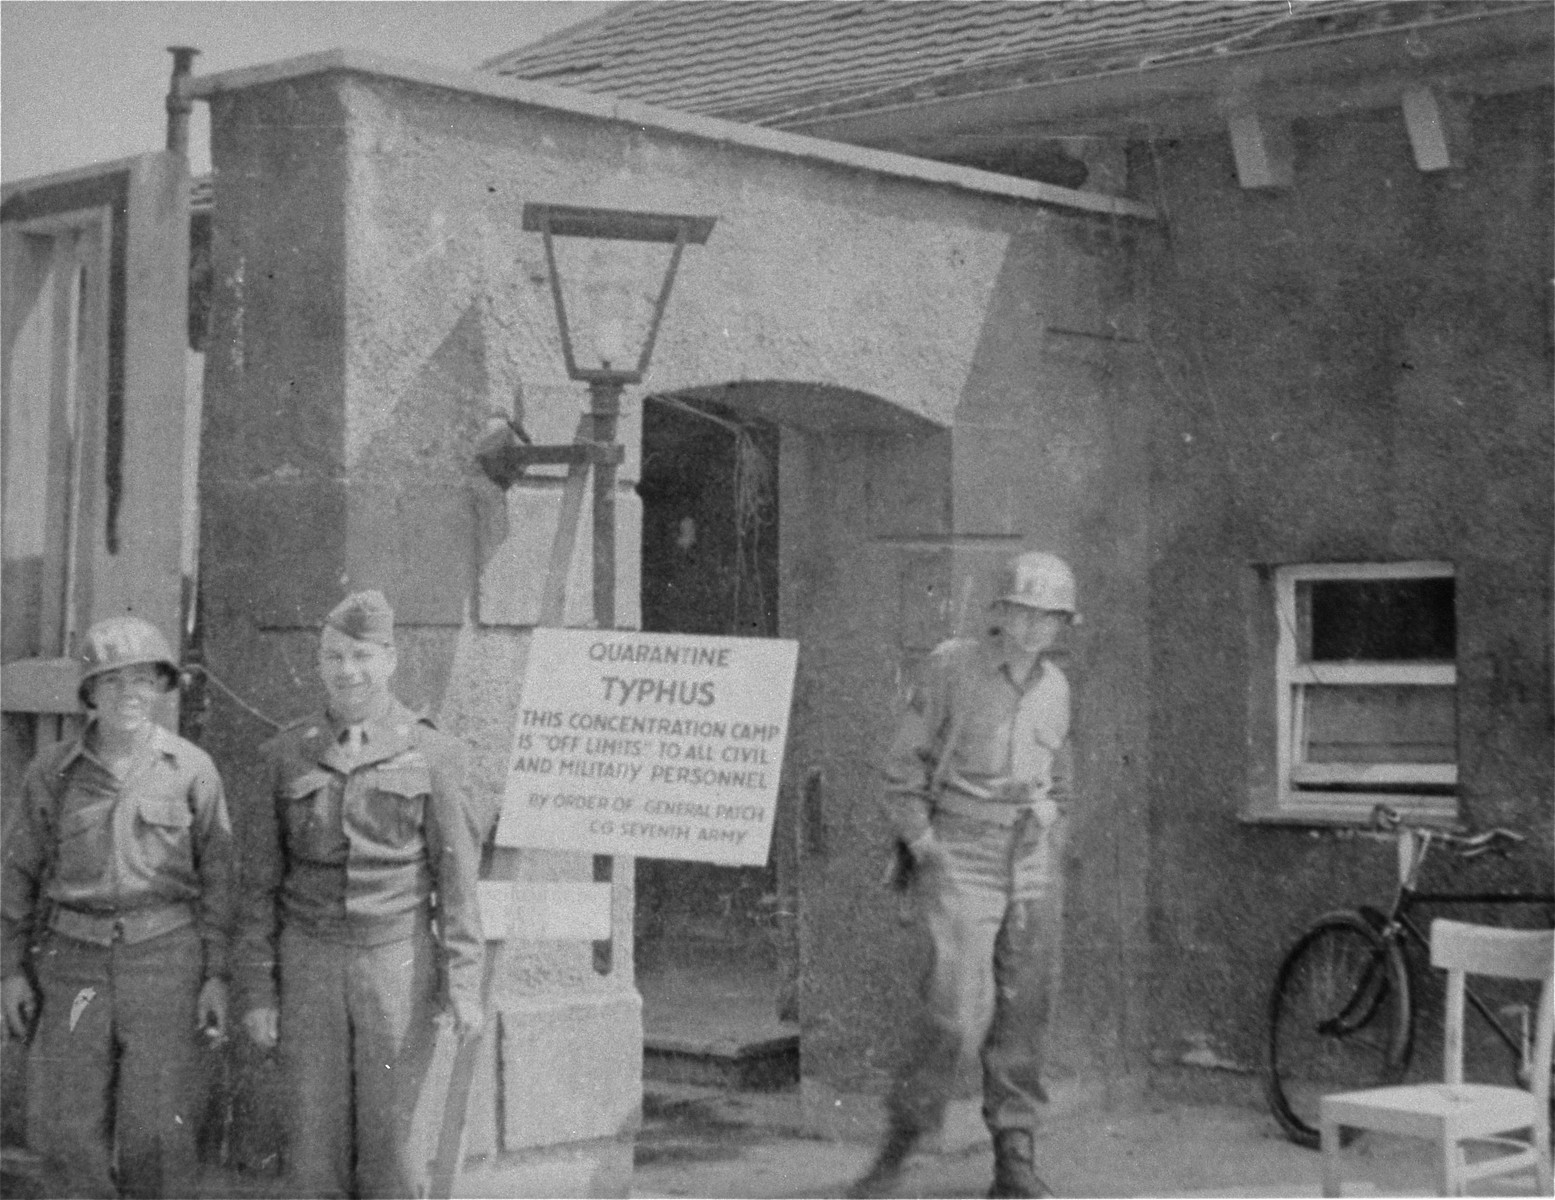 "American soldiers in the Dachau concentration camp.  The sign on the gate reads: ""Quarantine, Typhus, This Concentration Camp is Off Limits to all Civil and Military Personnel.  By Order of General Patch, CG Seventh Army""."